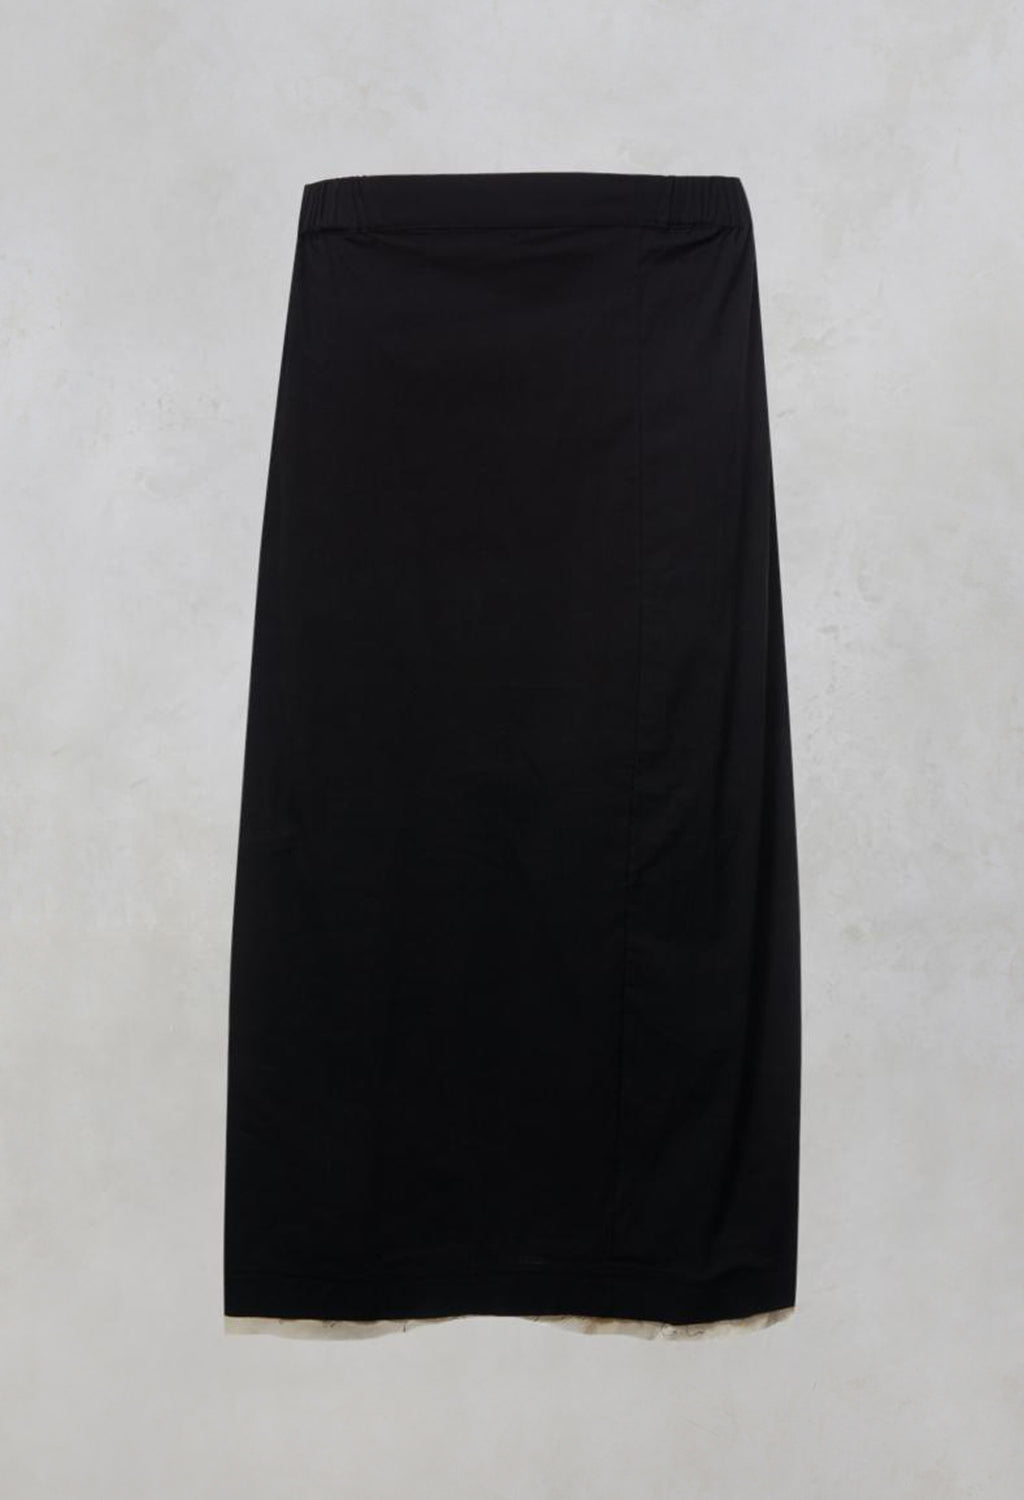 Contrast Raw Hem Skirt Trousers in Black / White